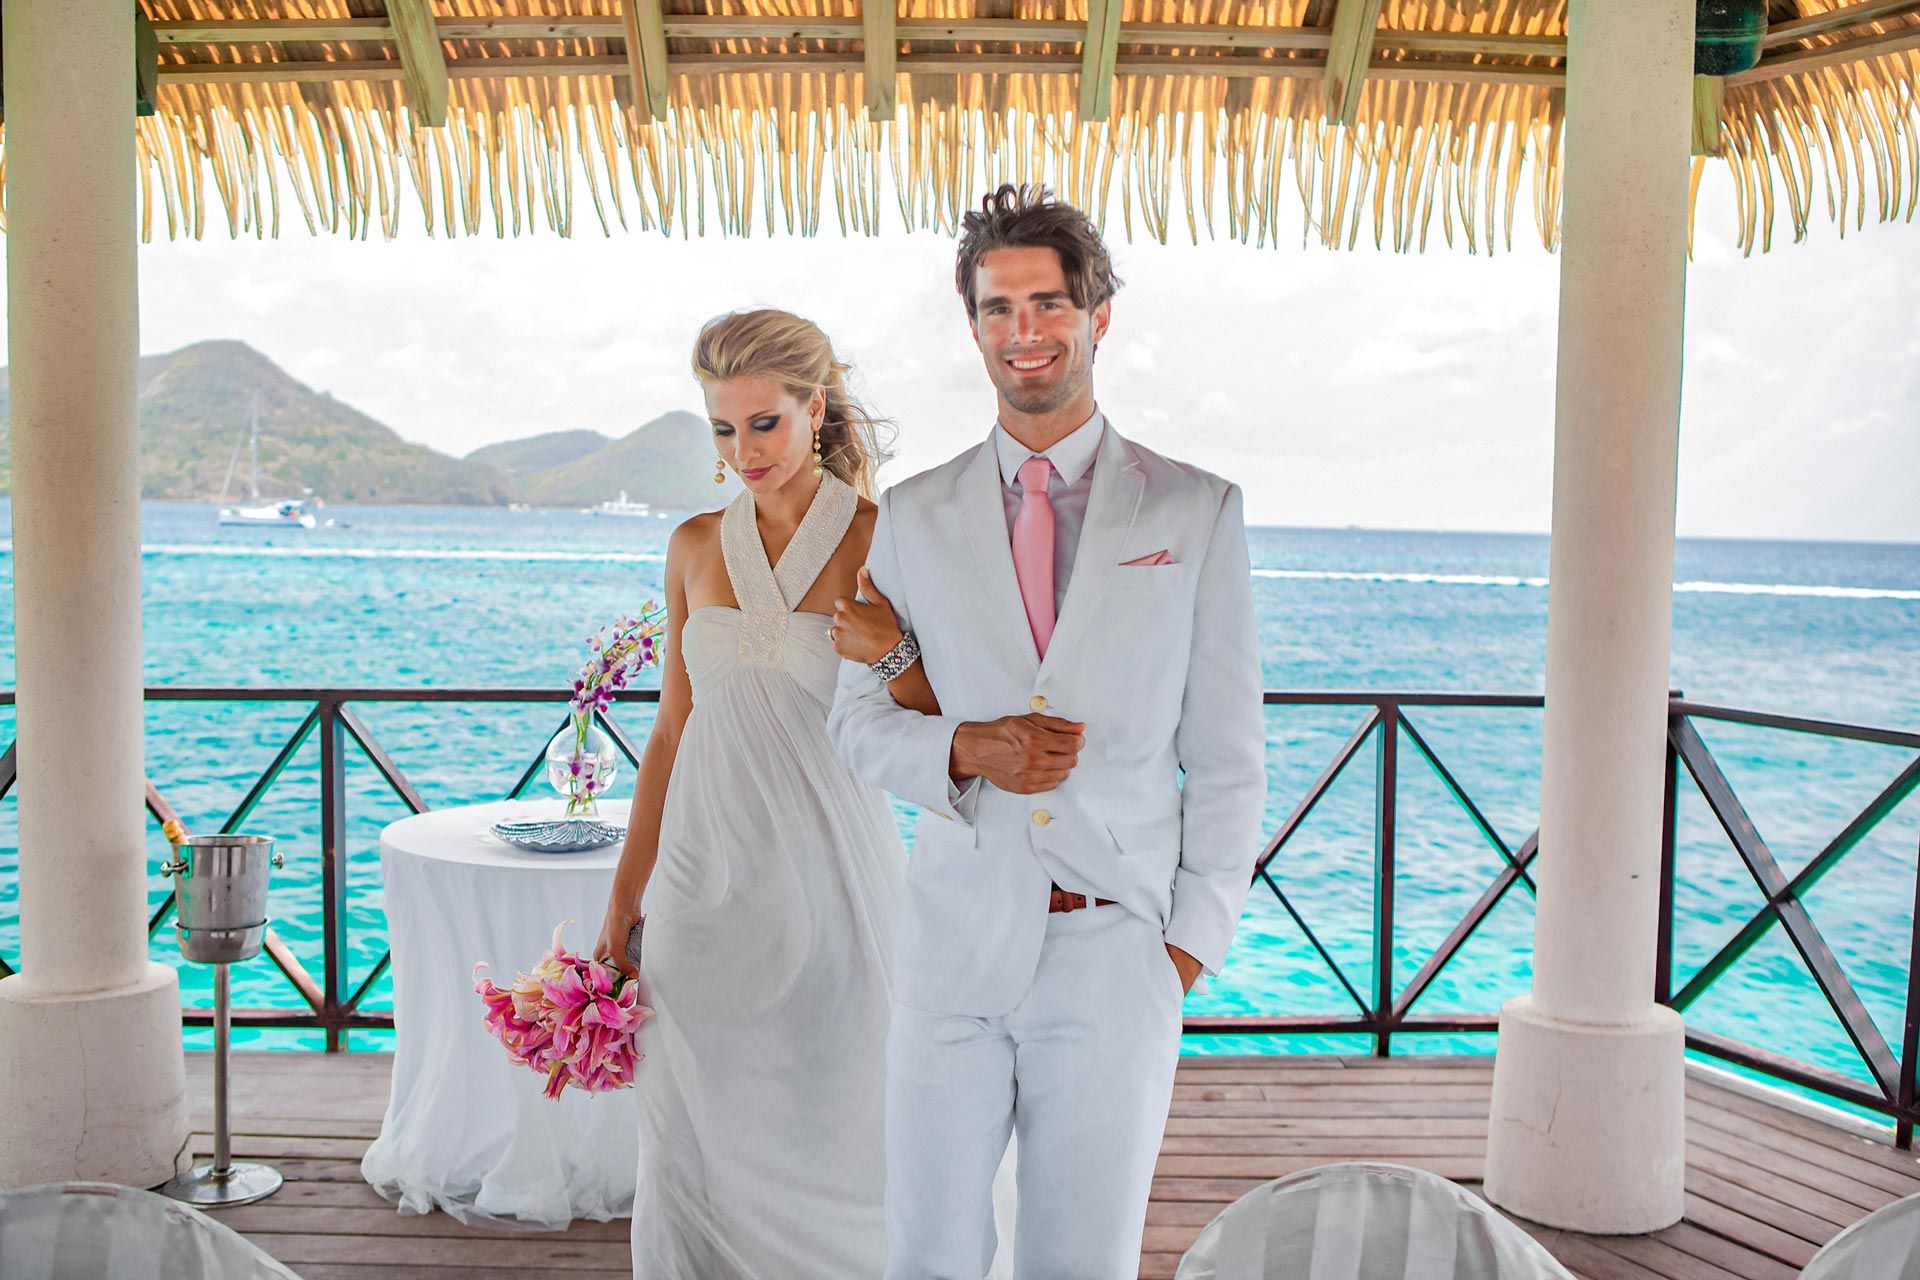 30 Things To Consider Planning A Beach Wedding Beaches,Casual Designer Wedding Dresses